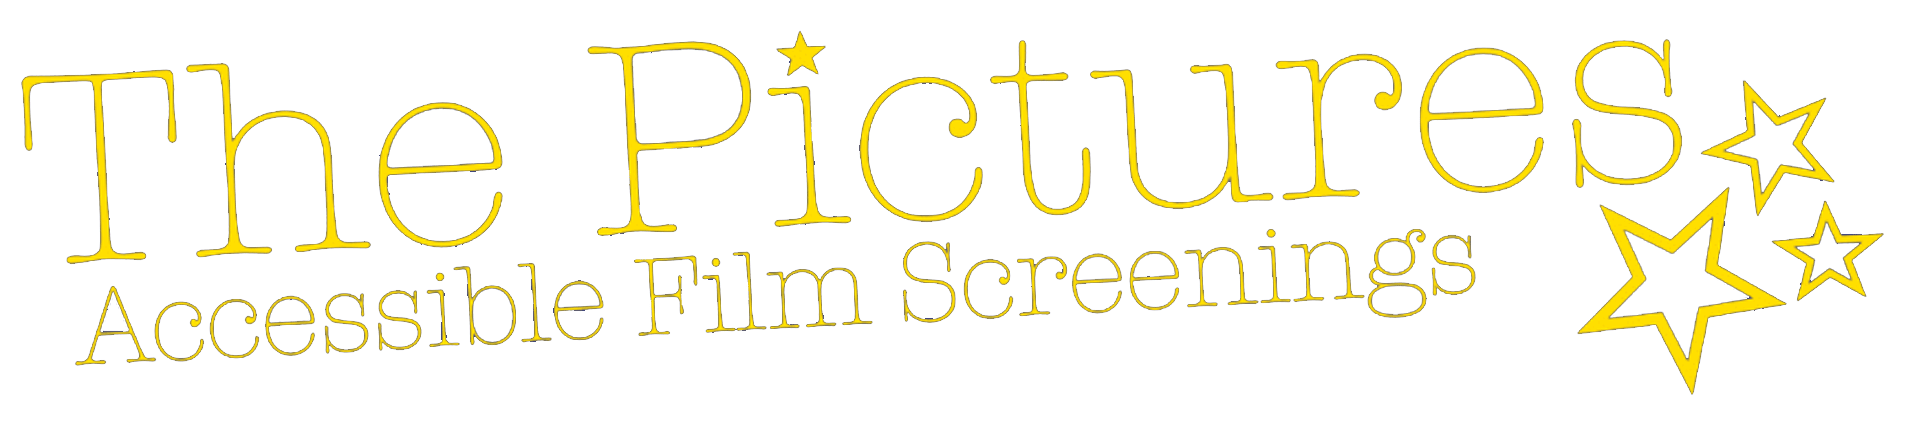 The-Pictures-logo